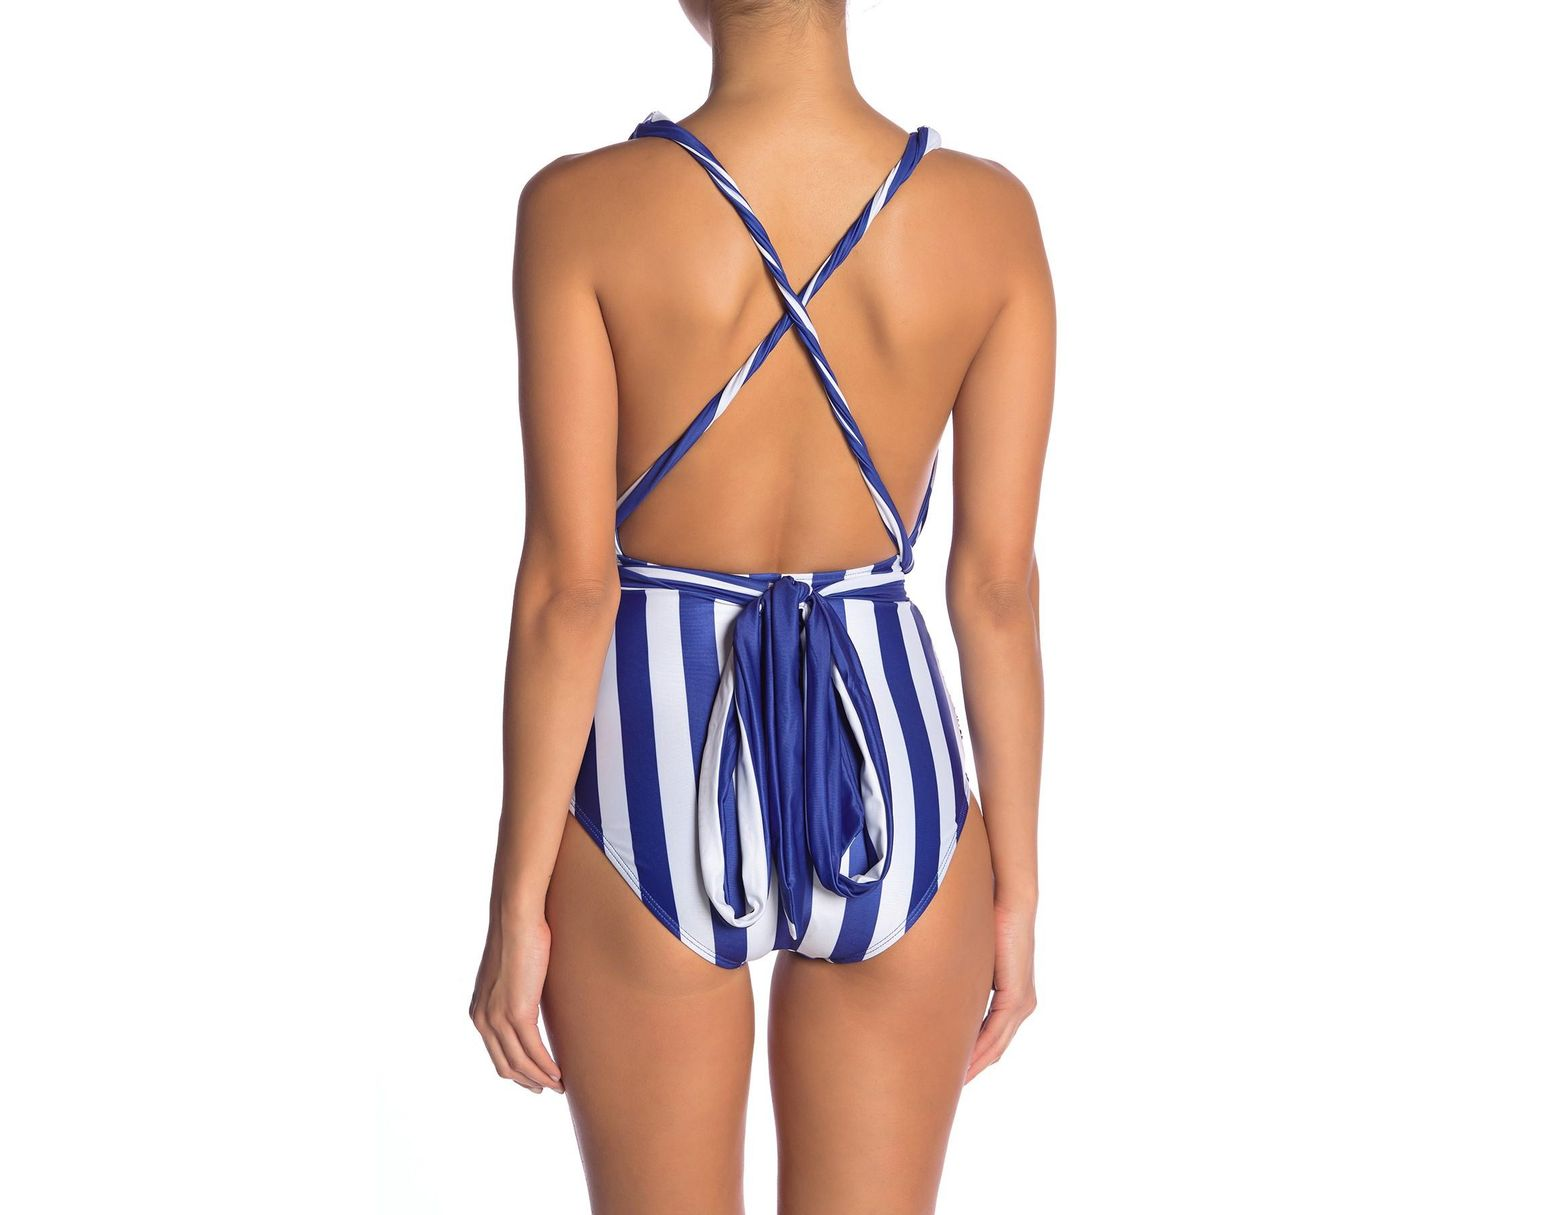 257f40c5a9e Nicole Miller Convertible One-piece Swimsuit in Blue - Lyst